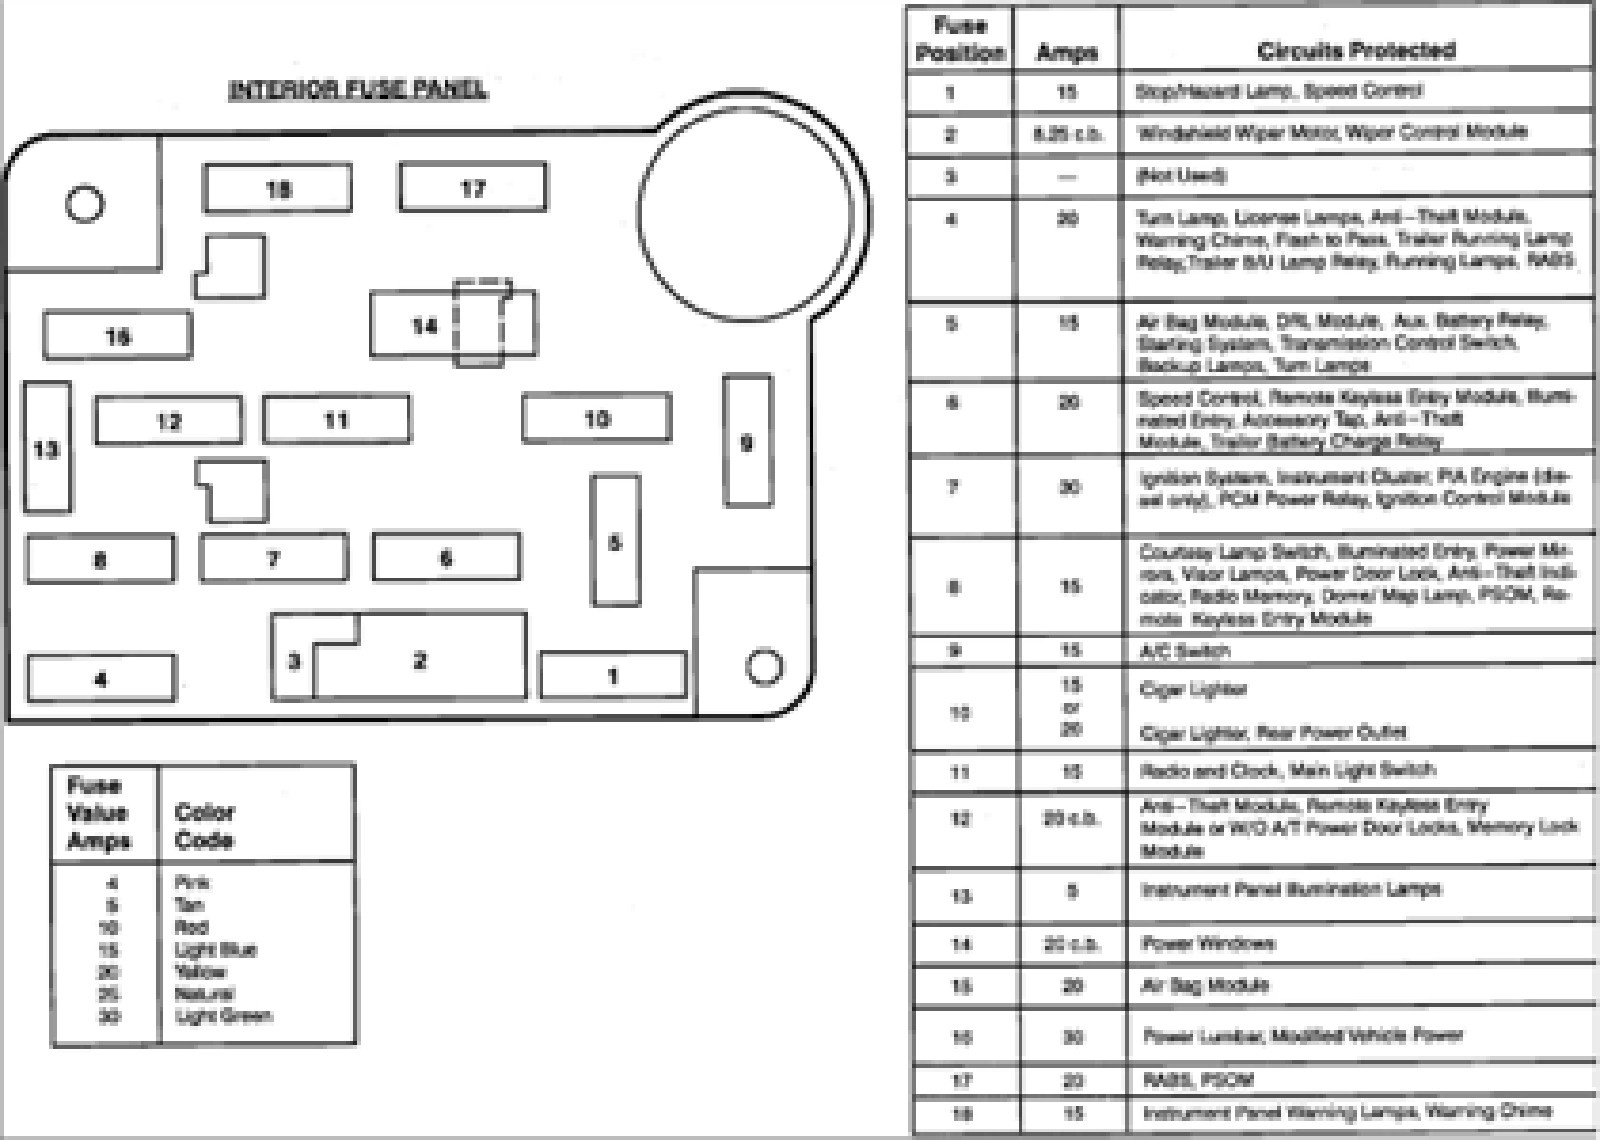 wiring diagram moreover 1993 ford f 150 fuse box diagram also rh 107 191 48 154 1999 Ford F-150 Fuse Panel Diagram 1990 ford f150 fuse panel diagram